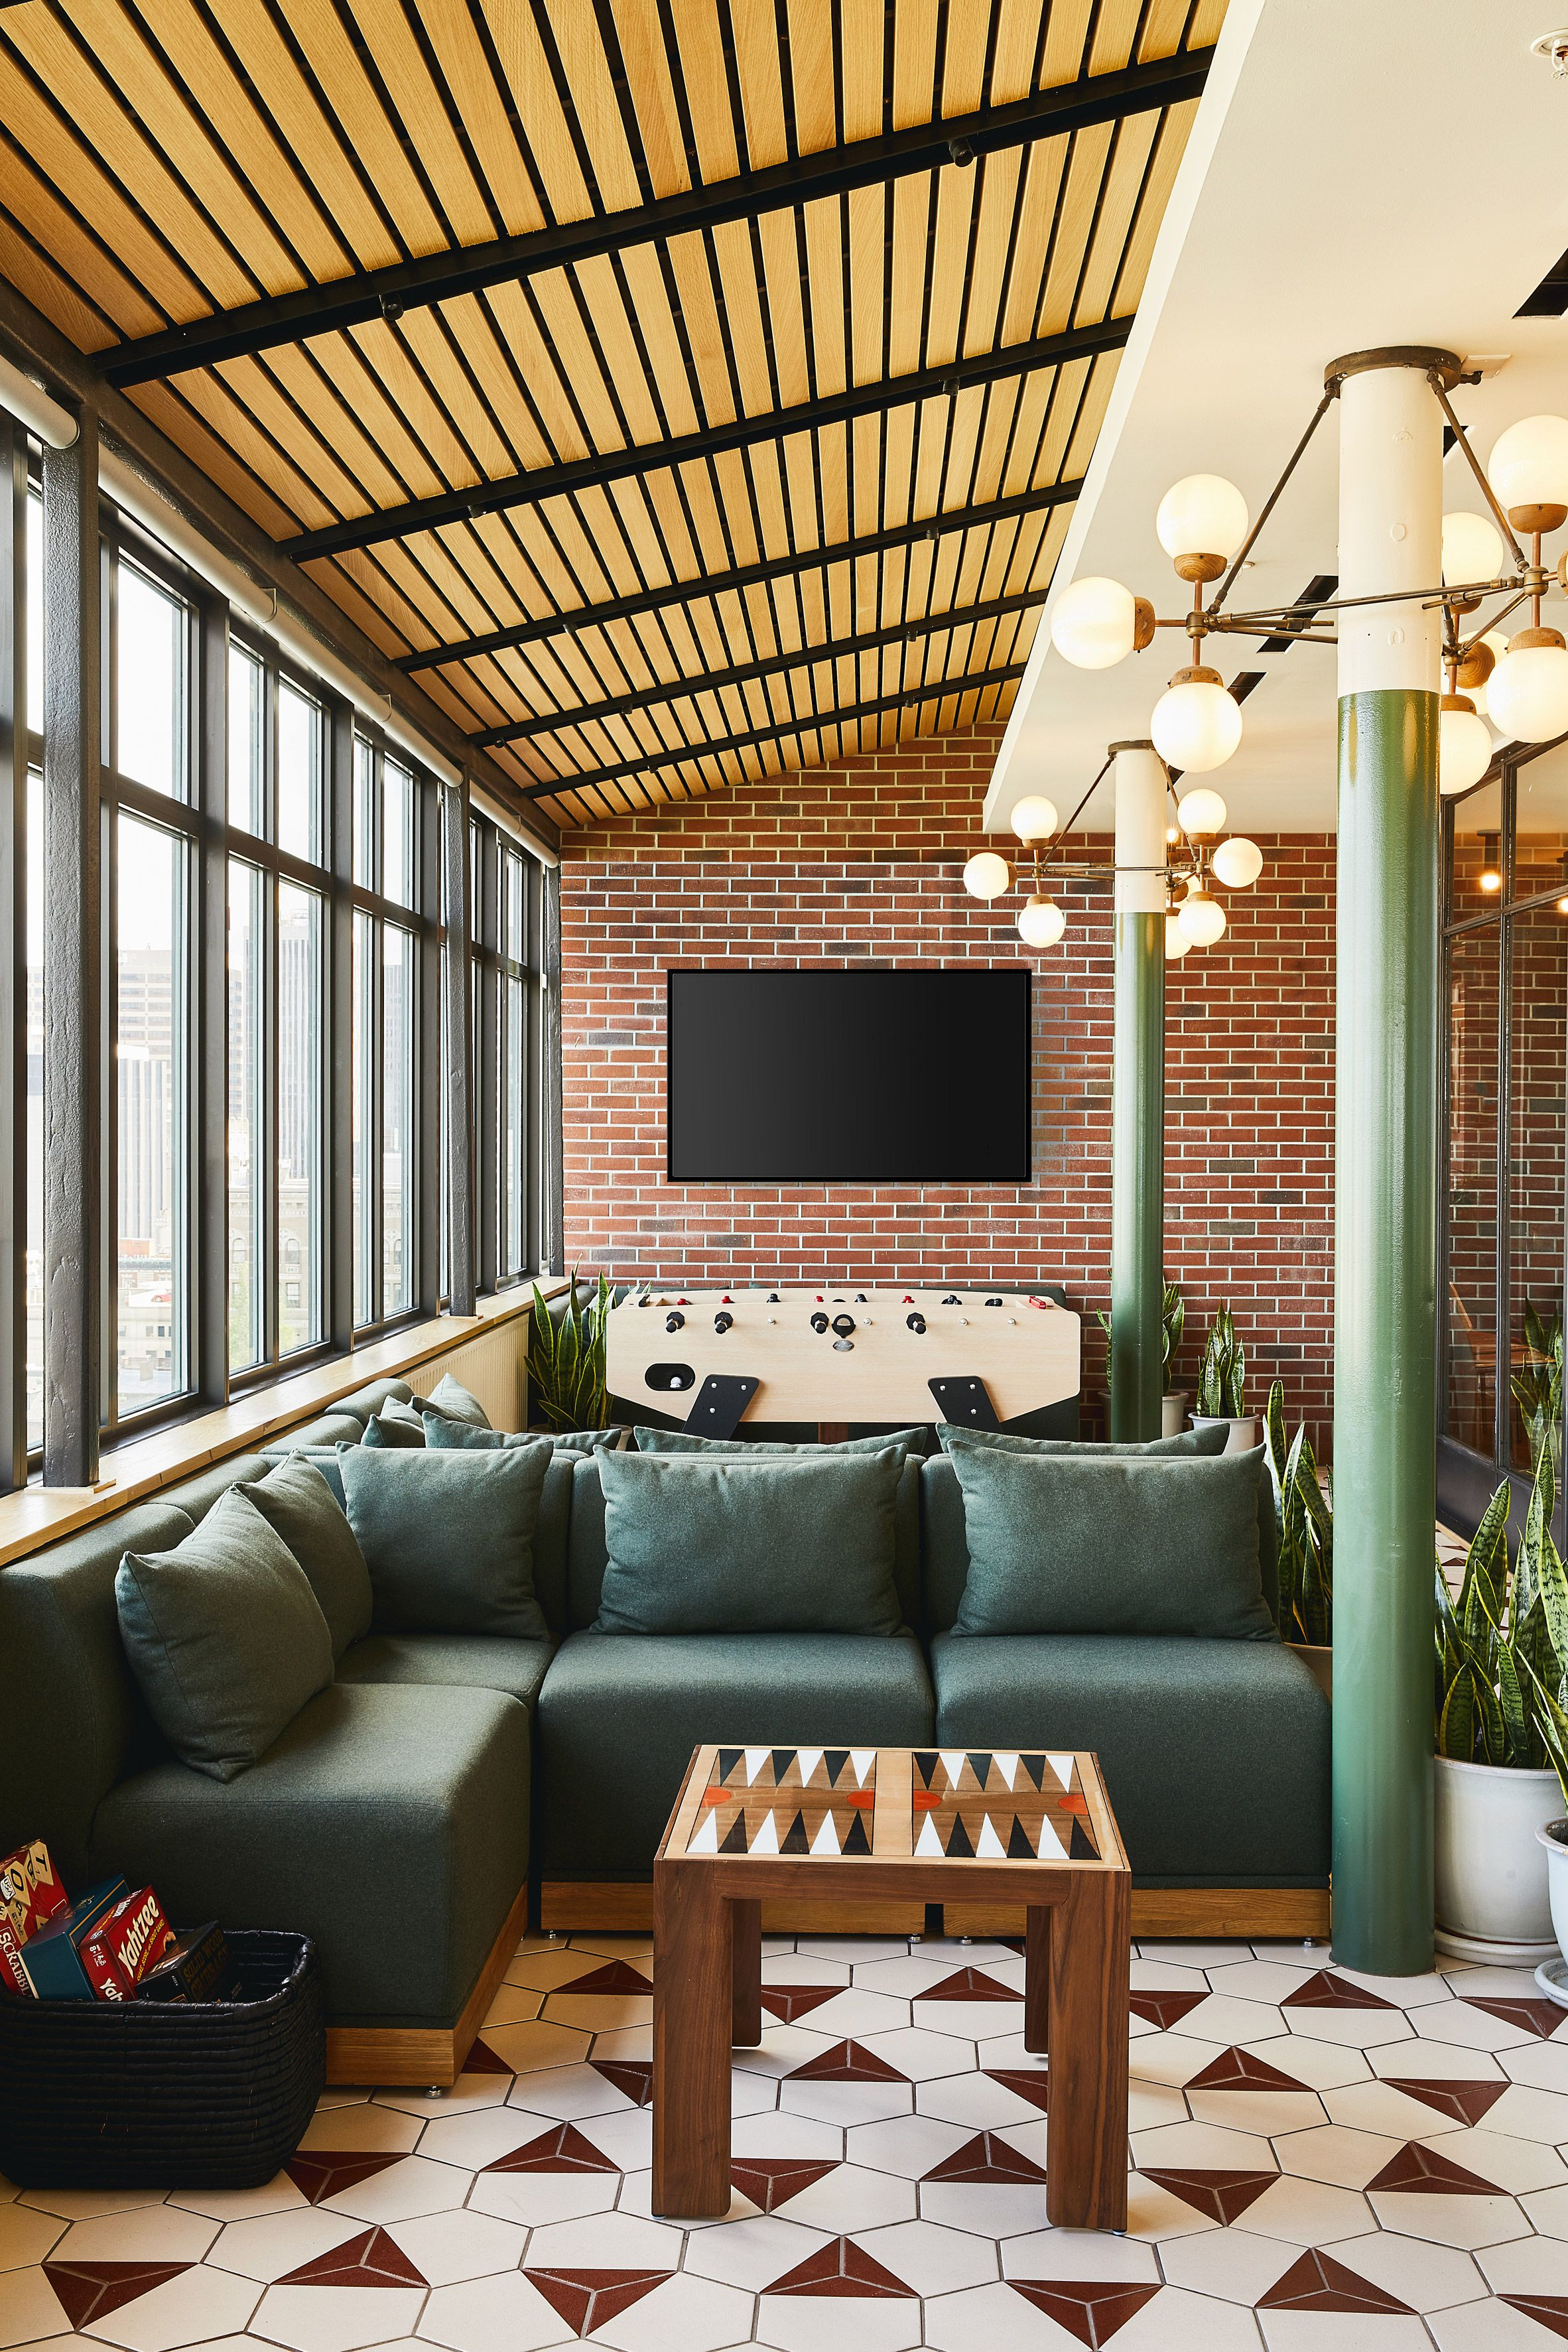 Boutique Hotel Revival Opens In Old Baltimore Mansion Interior